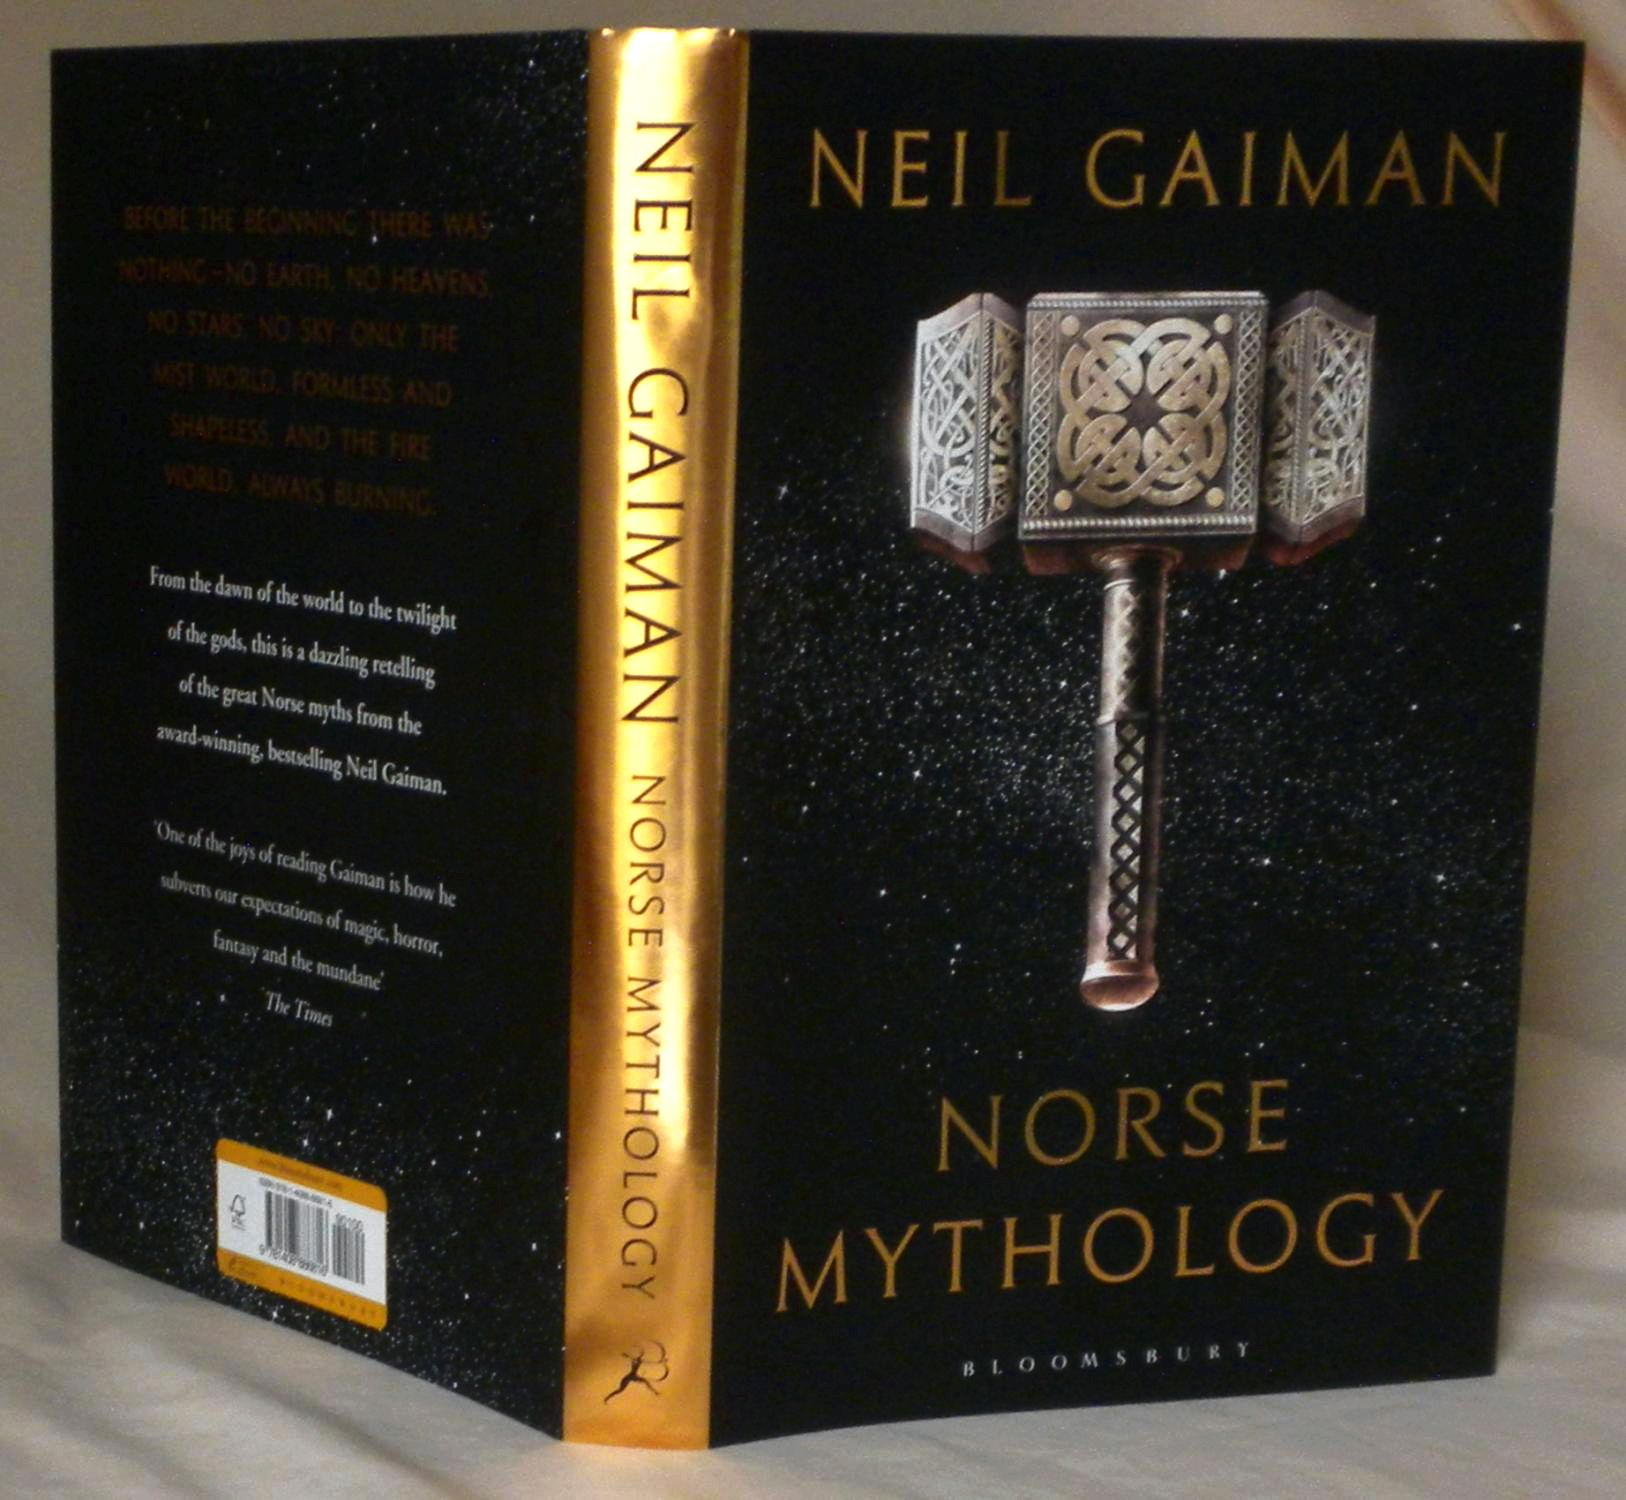 Neil gaiman's next book will explore norse mythology though probably not